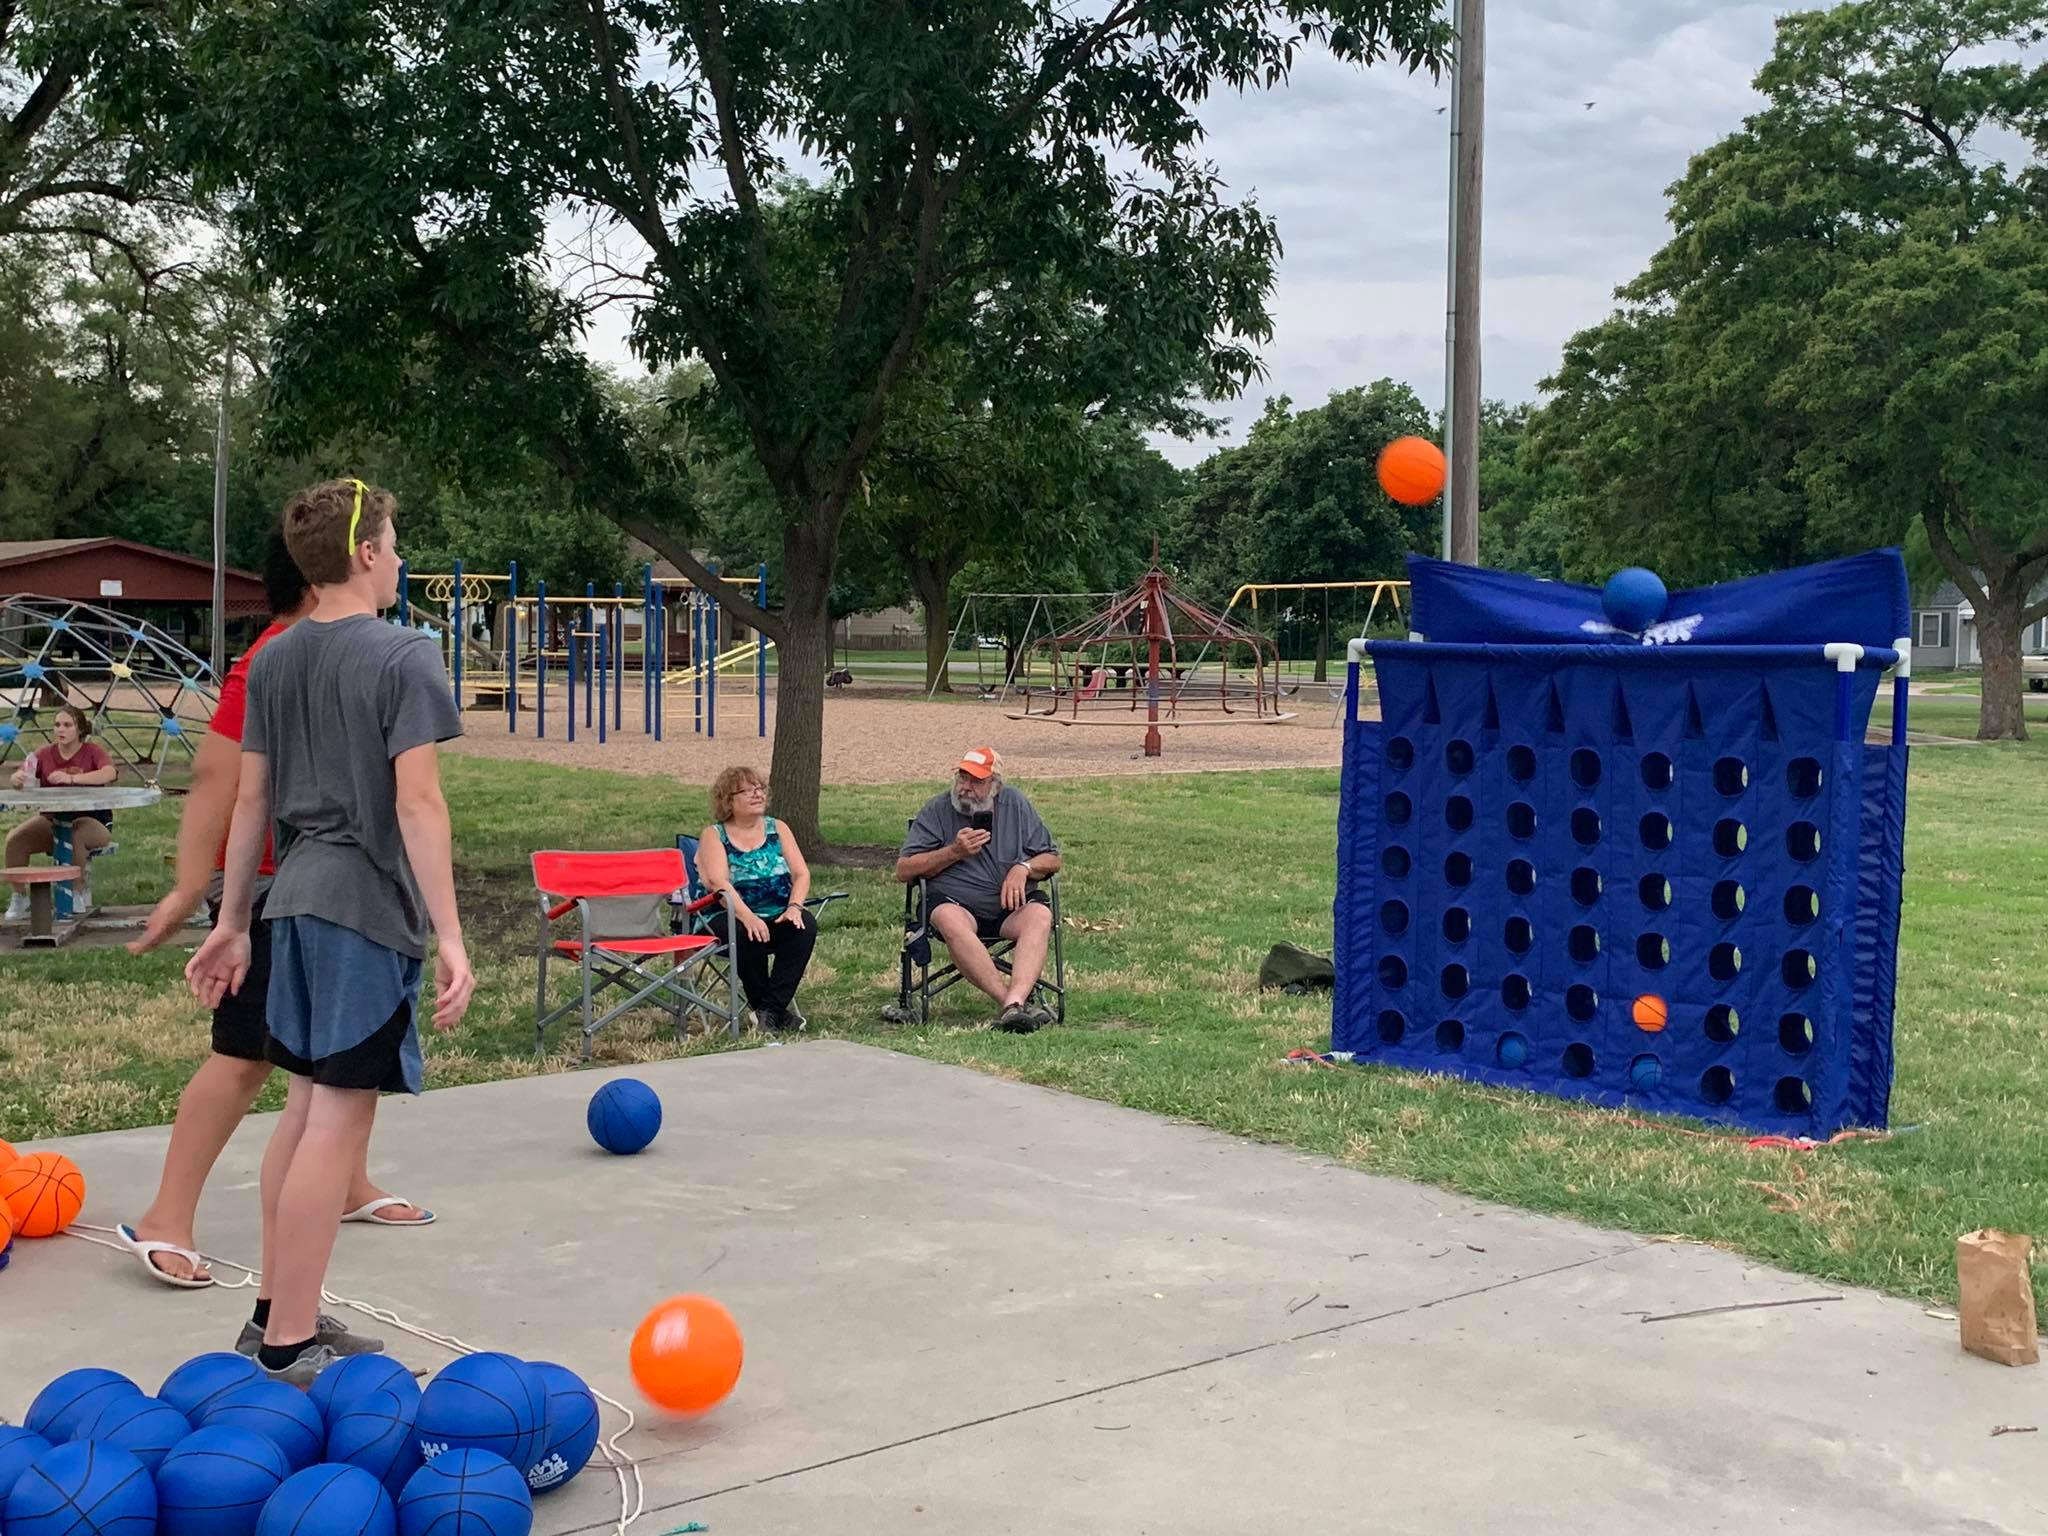 Sedgwick community enjoys Father's Day together at the park